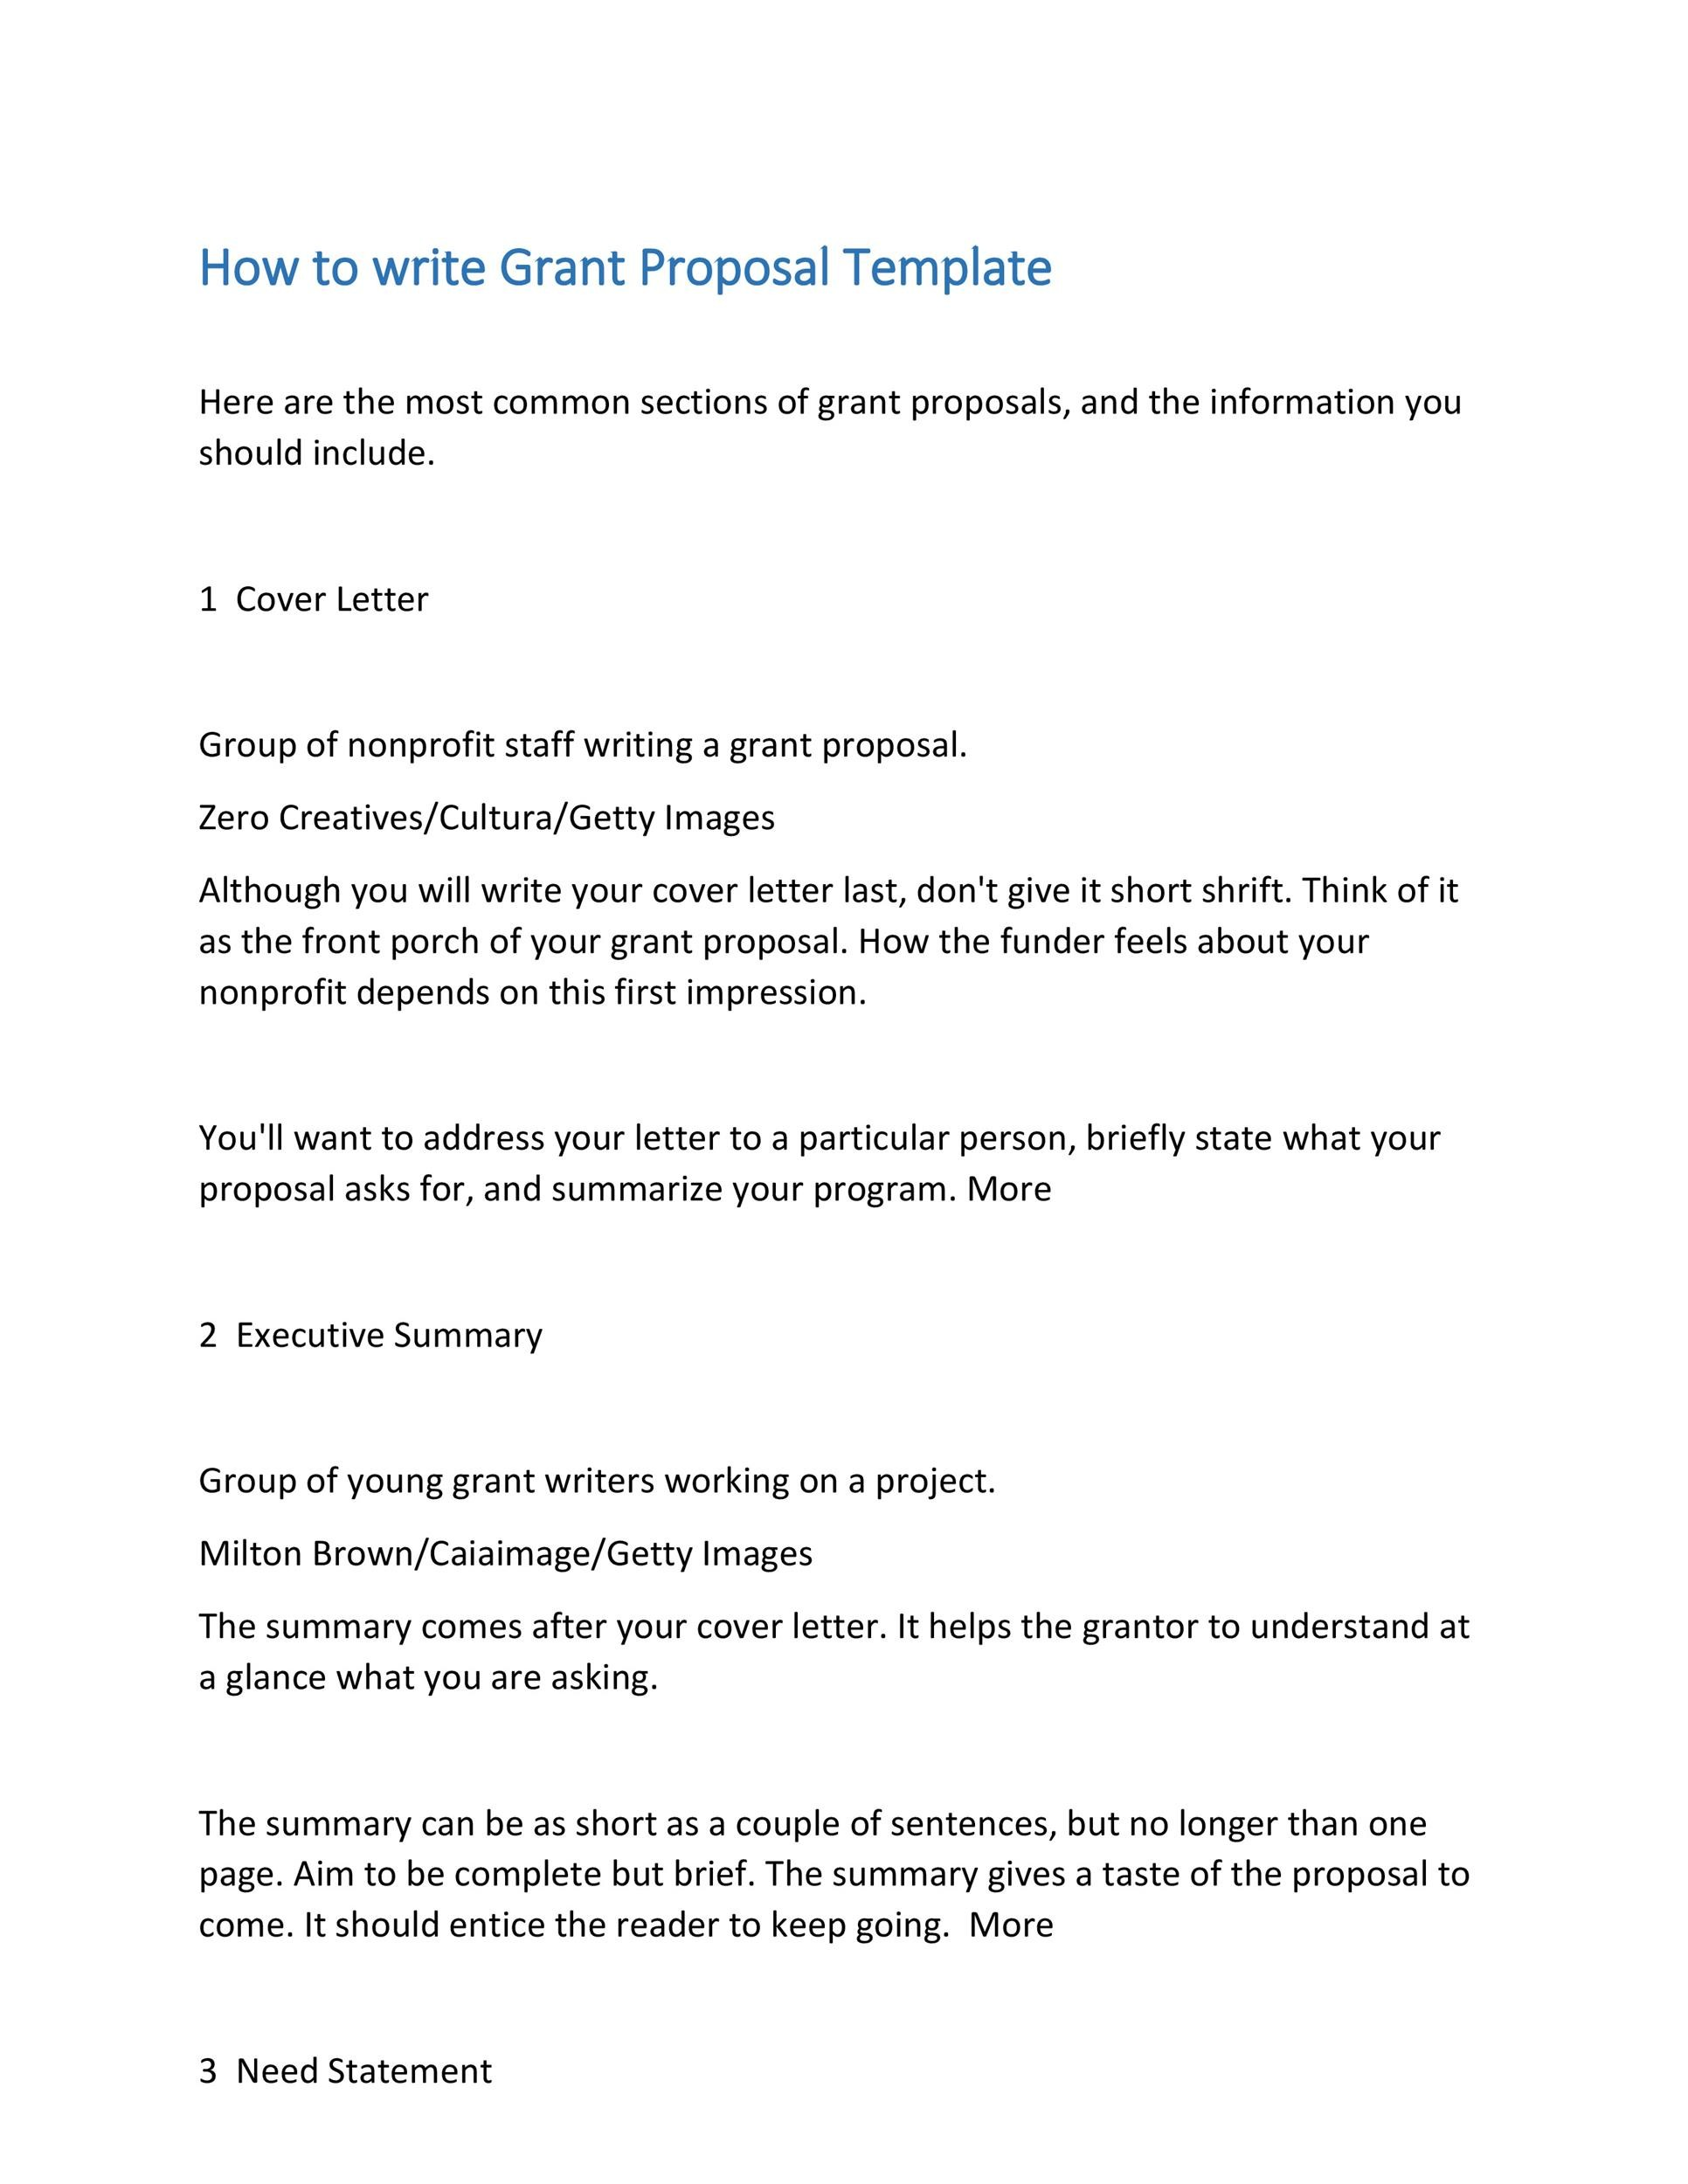 Grant Proposal Katherine Harper Sample Grant Proposal Proposal